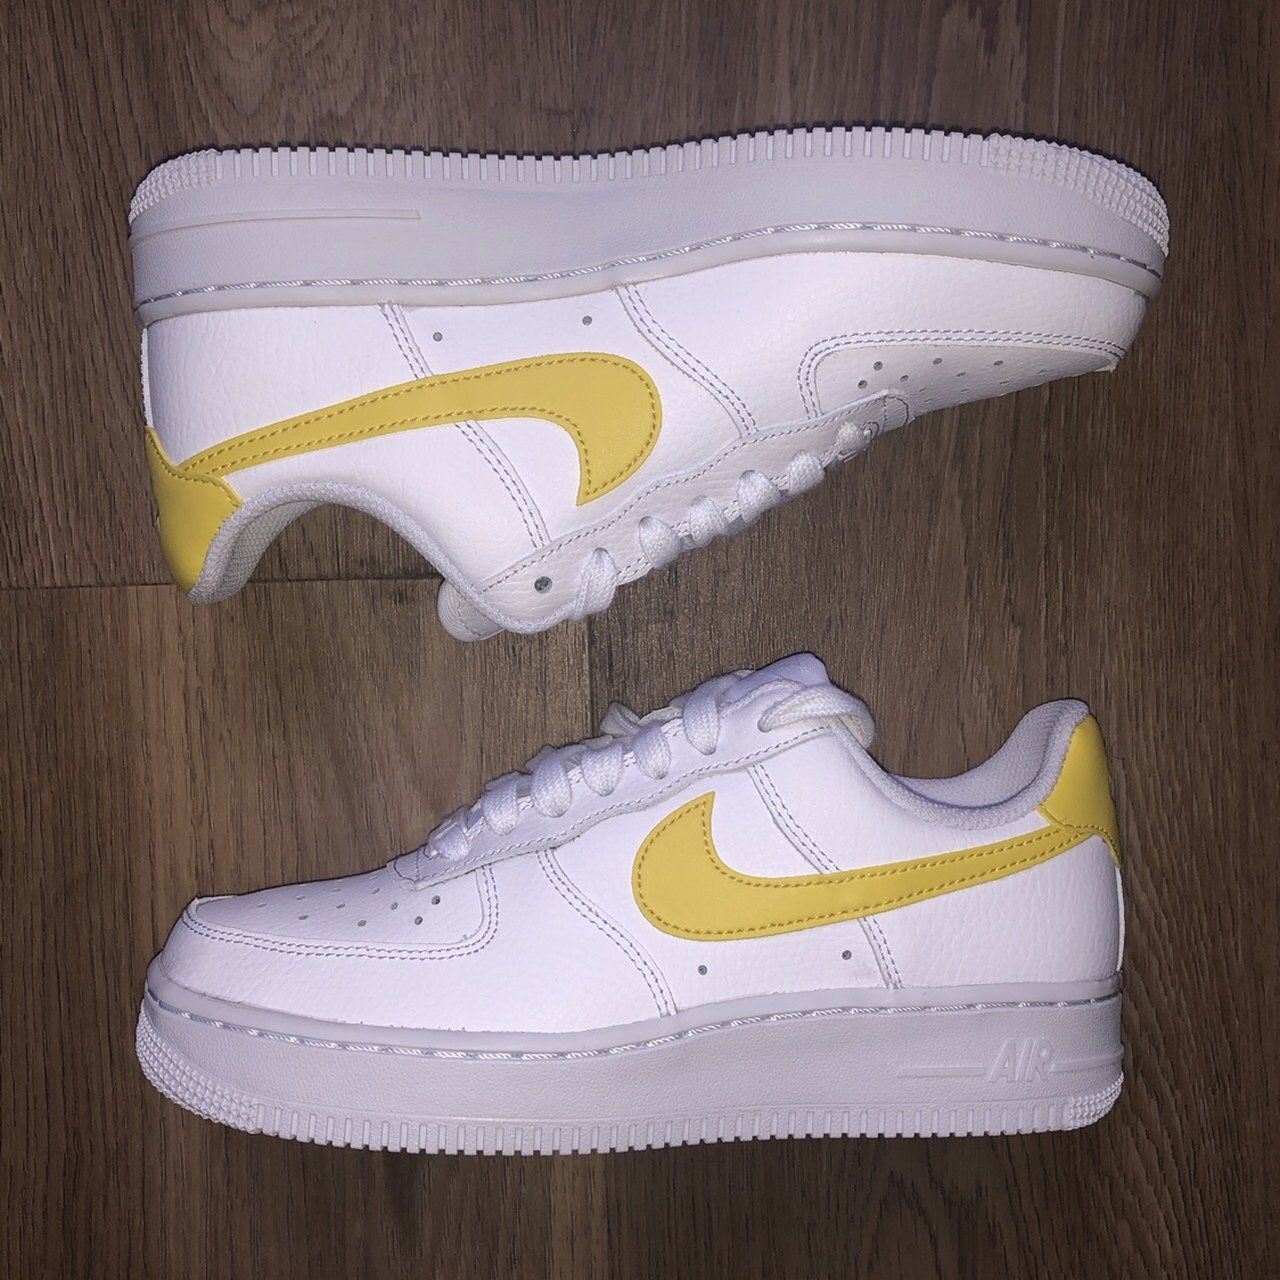 748526c7be Brand New Nike Air Force 1 07 Size UK 2.5 (Fit size 3) Womens